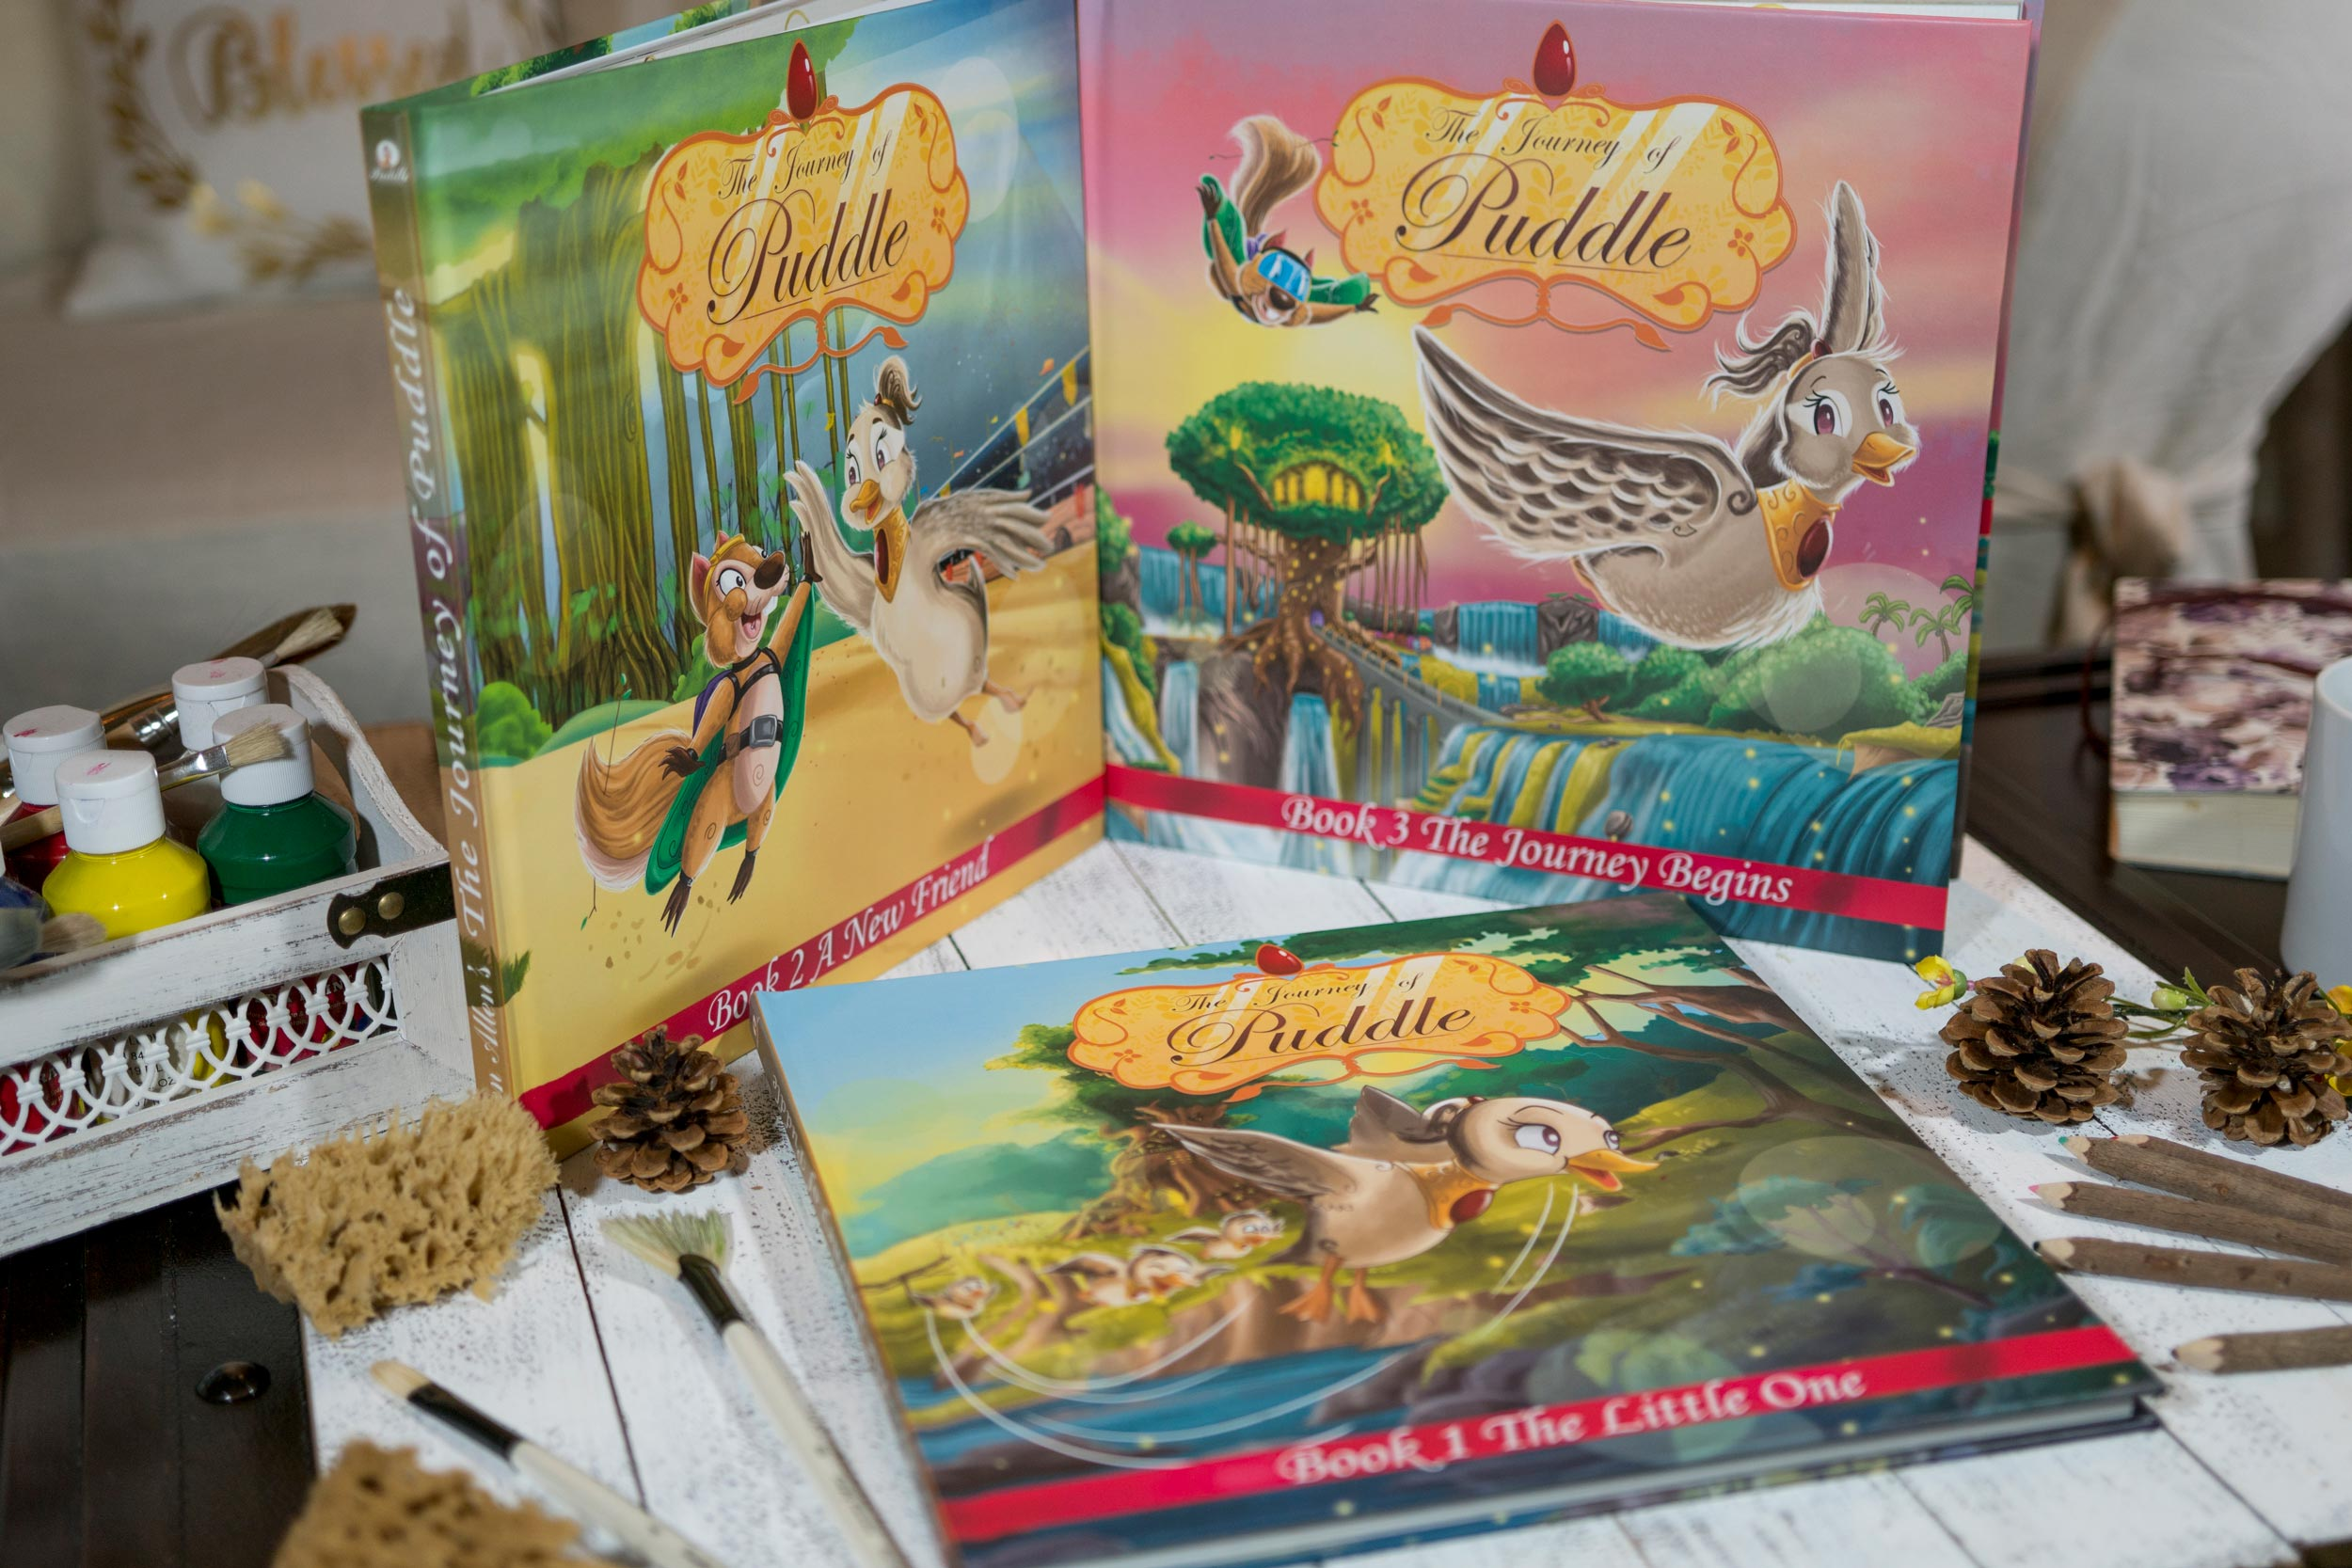 Journey of Puddle - Christian Illustrated Children Books